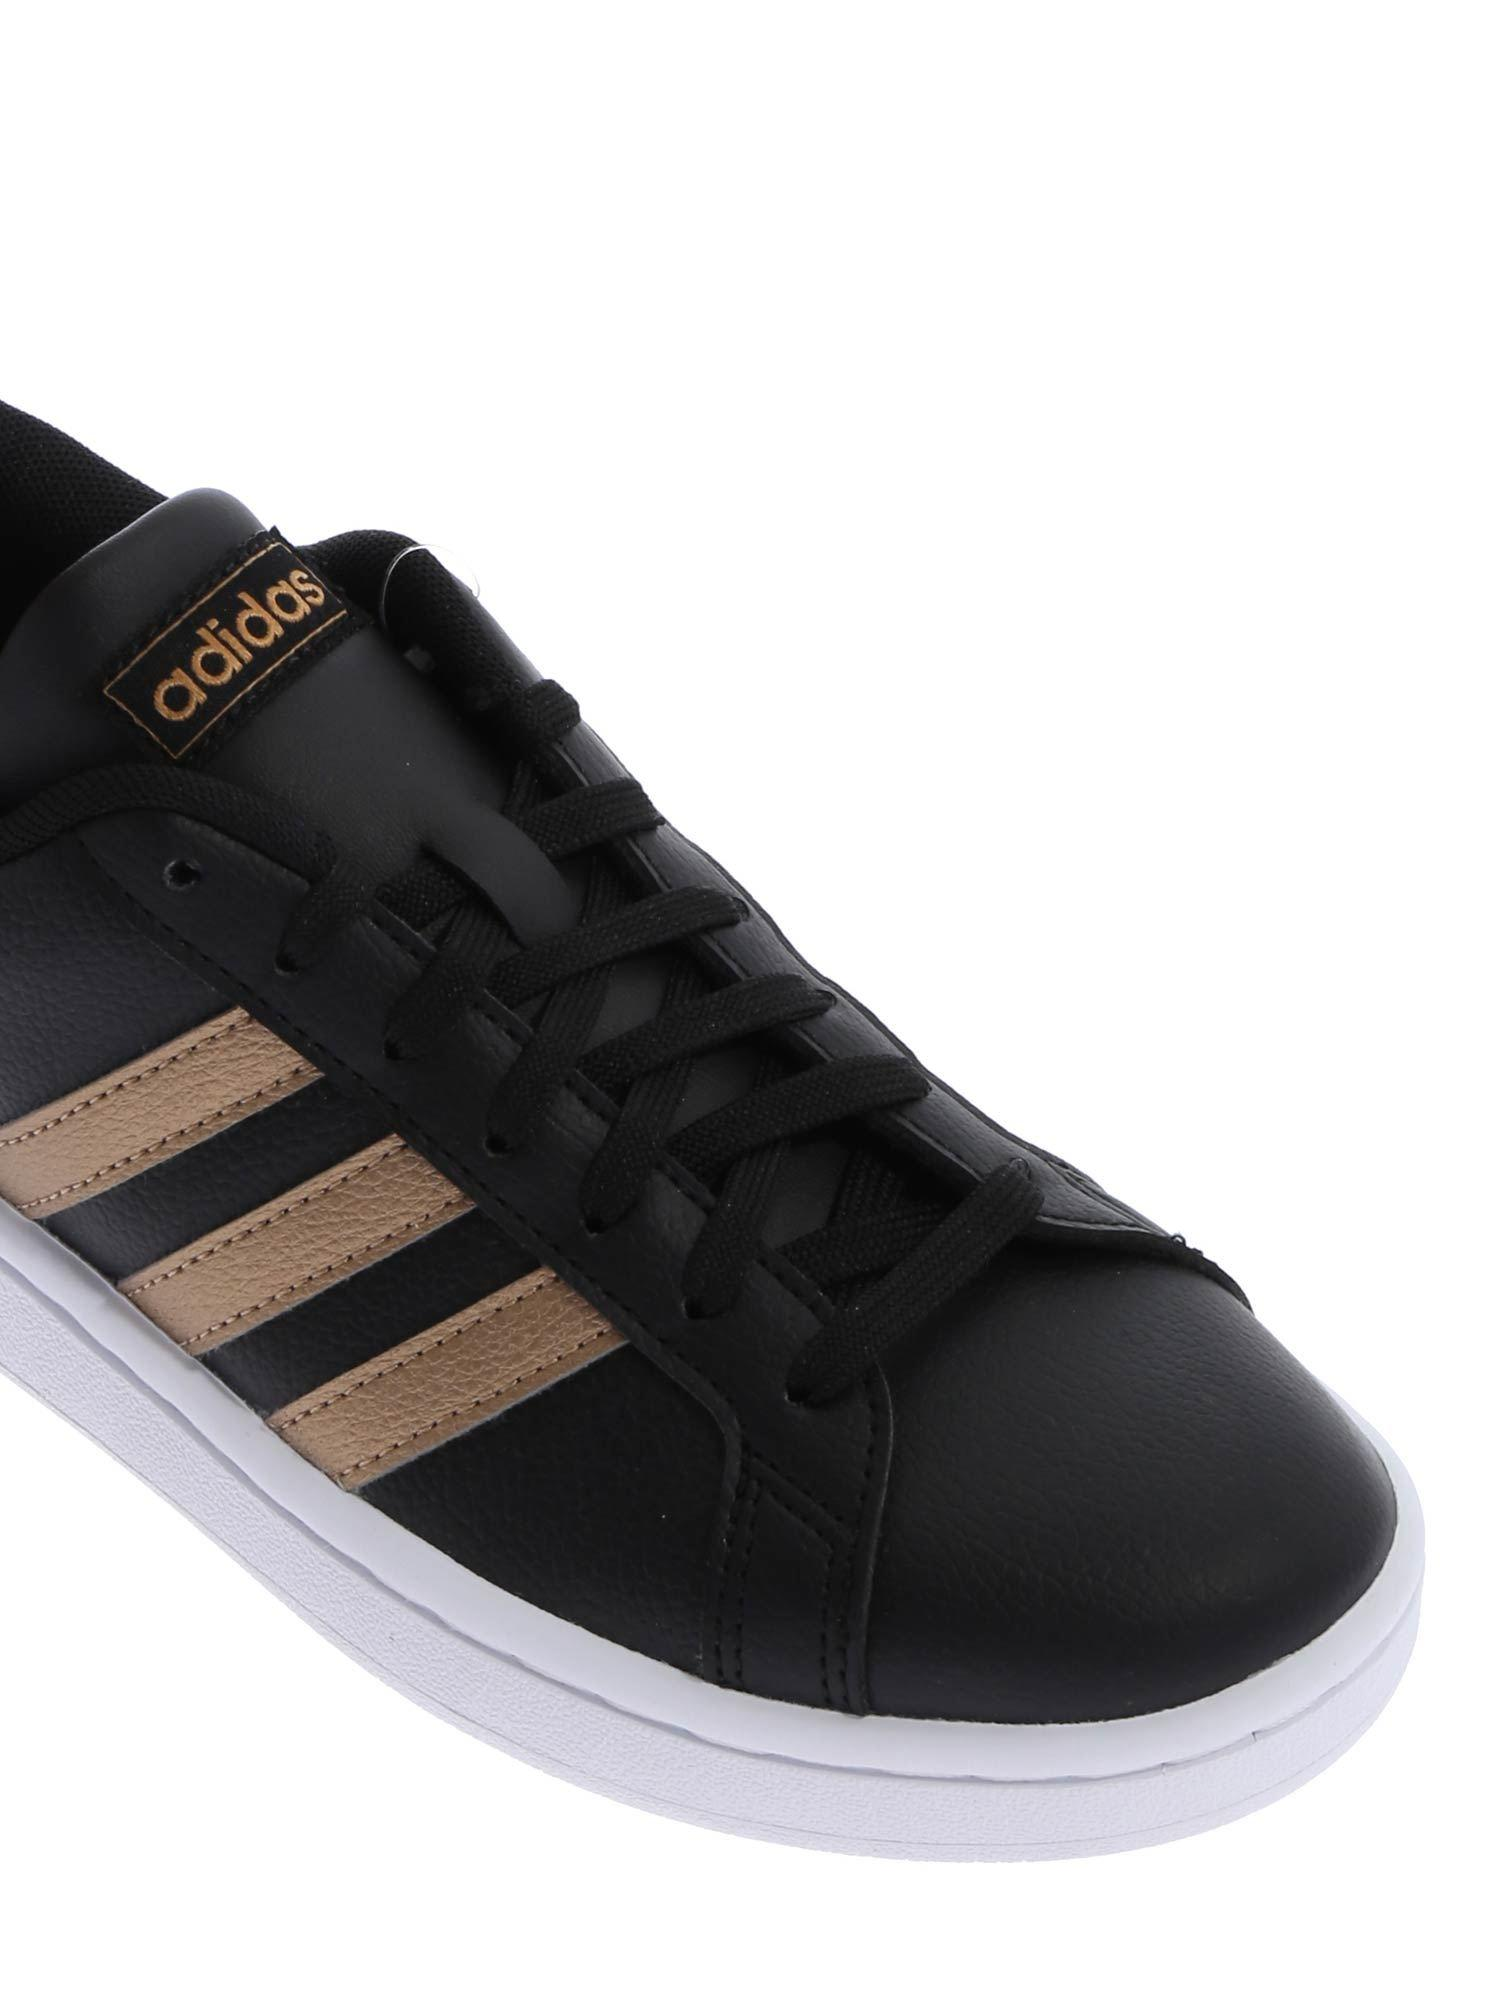 Black And Gold Grand Court Sneakers